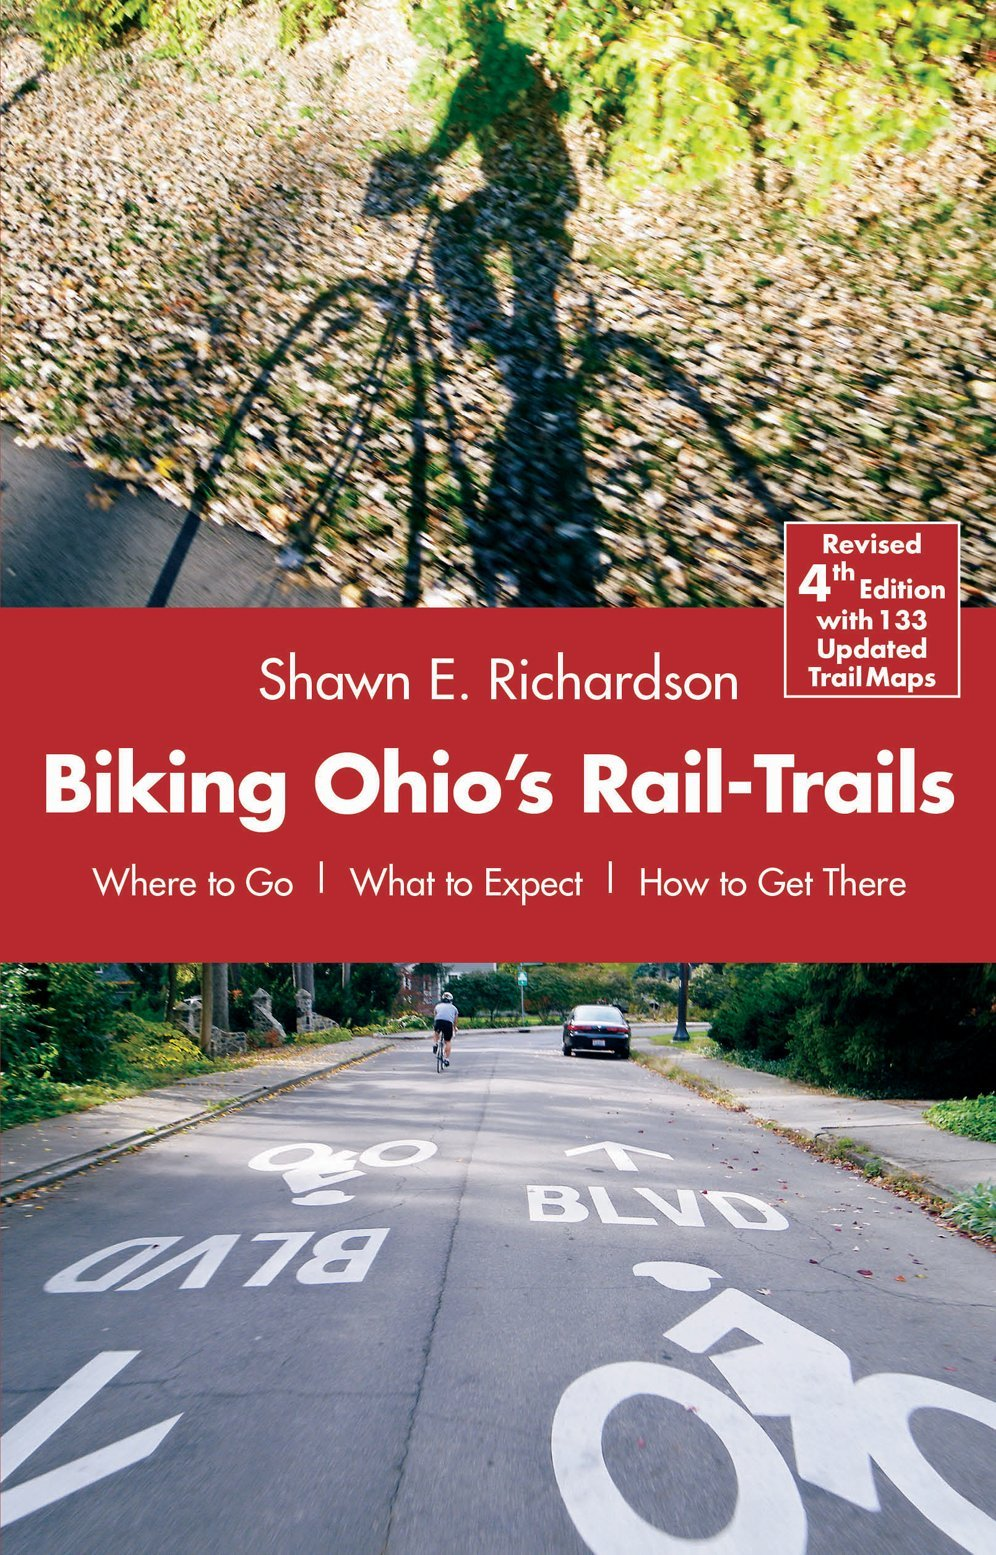 Biking Ohio's Rail-Trails: Where to Go, What to Expect, How